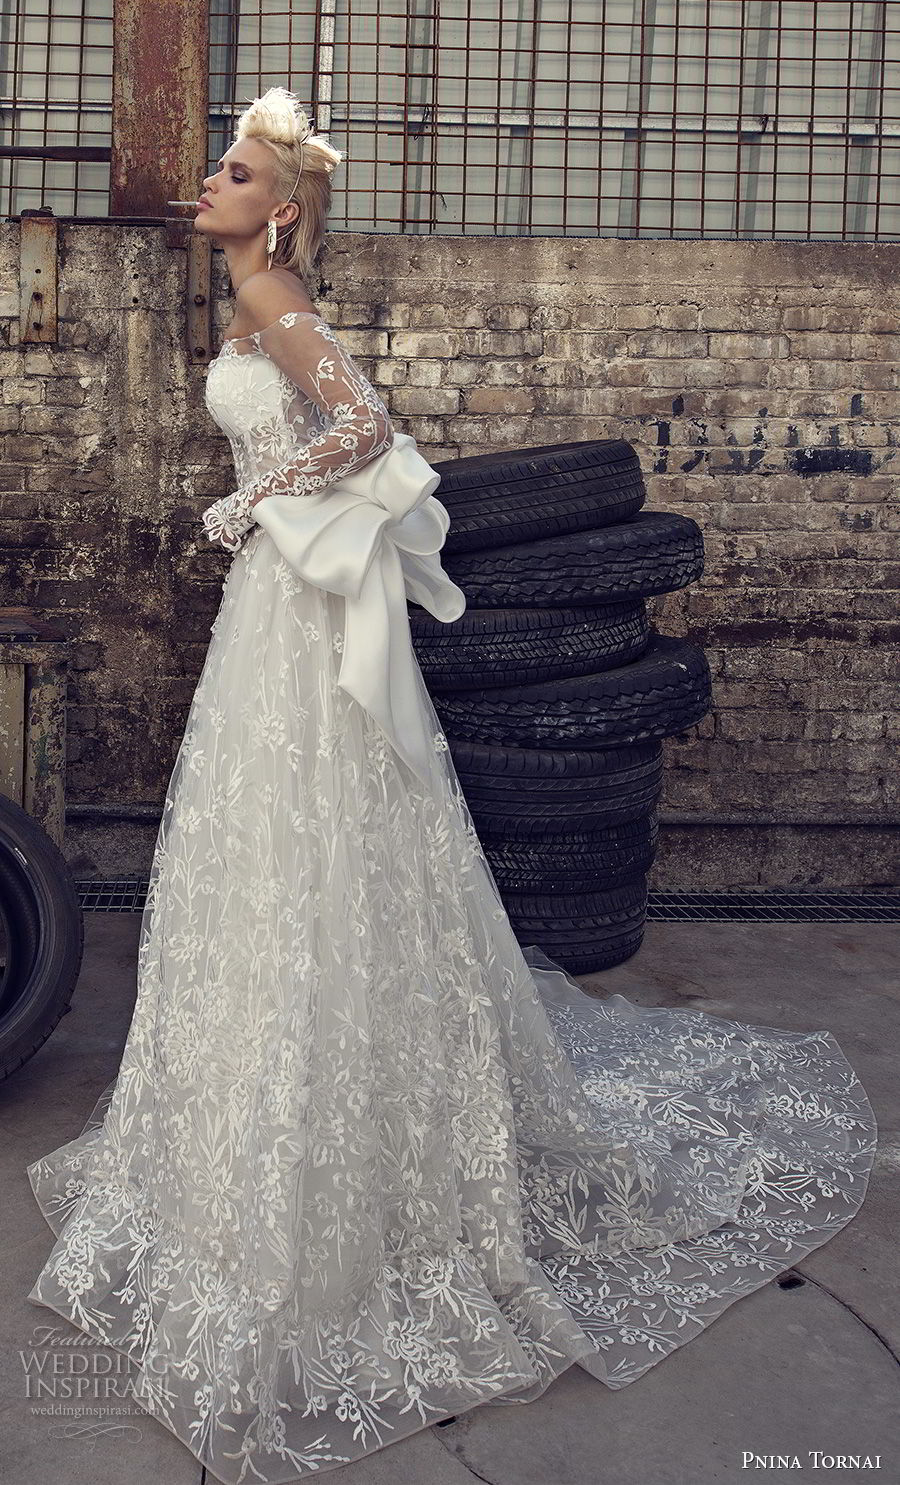 pnina tornai 2019 love bridal long sleeves off the shoulder straight across neckline full embellishment romantic modified a line wedding dress sheer lace back sweep train (3) sdv